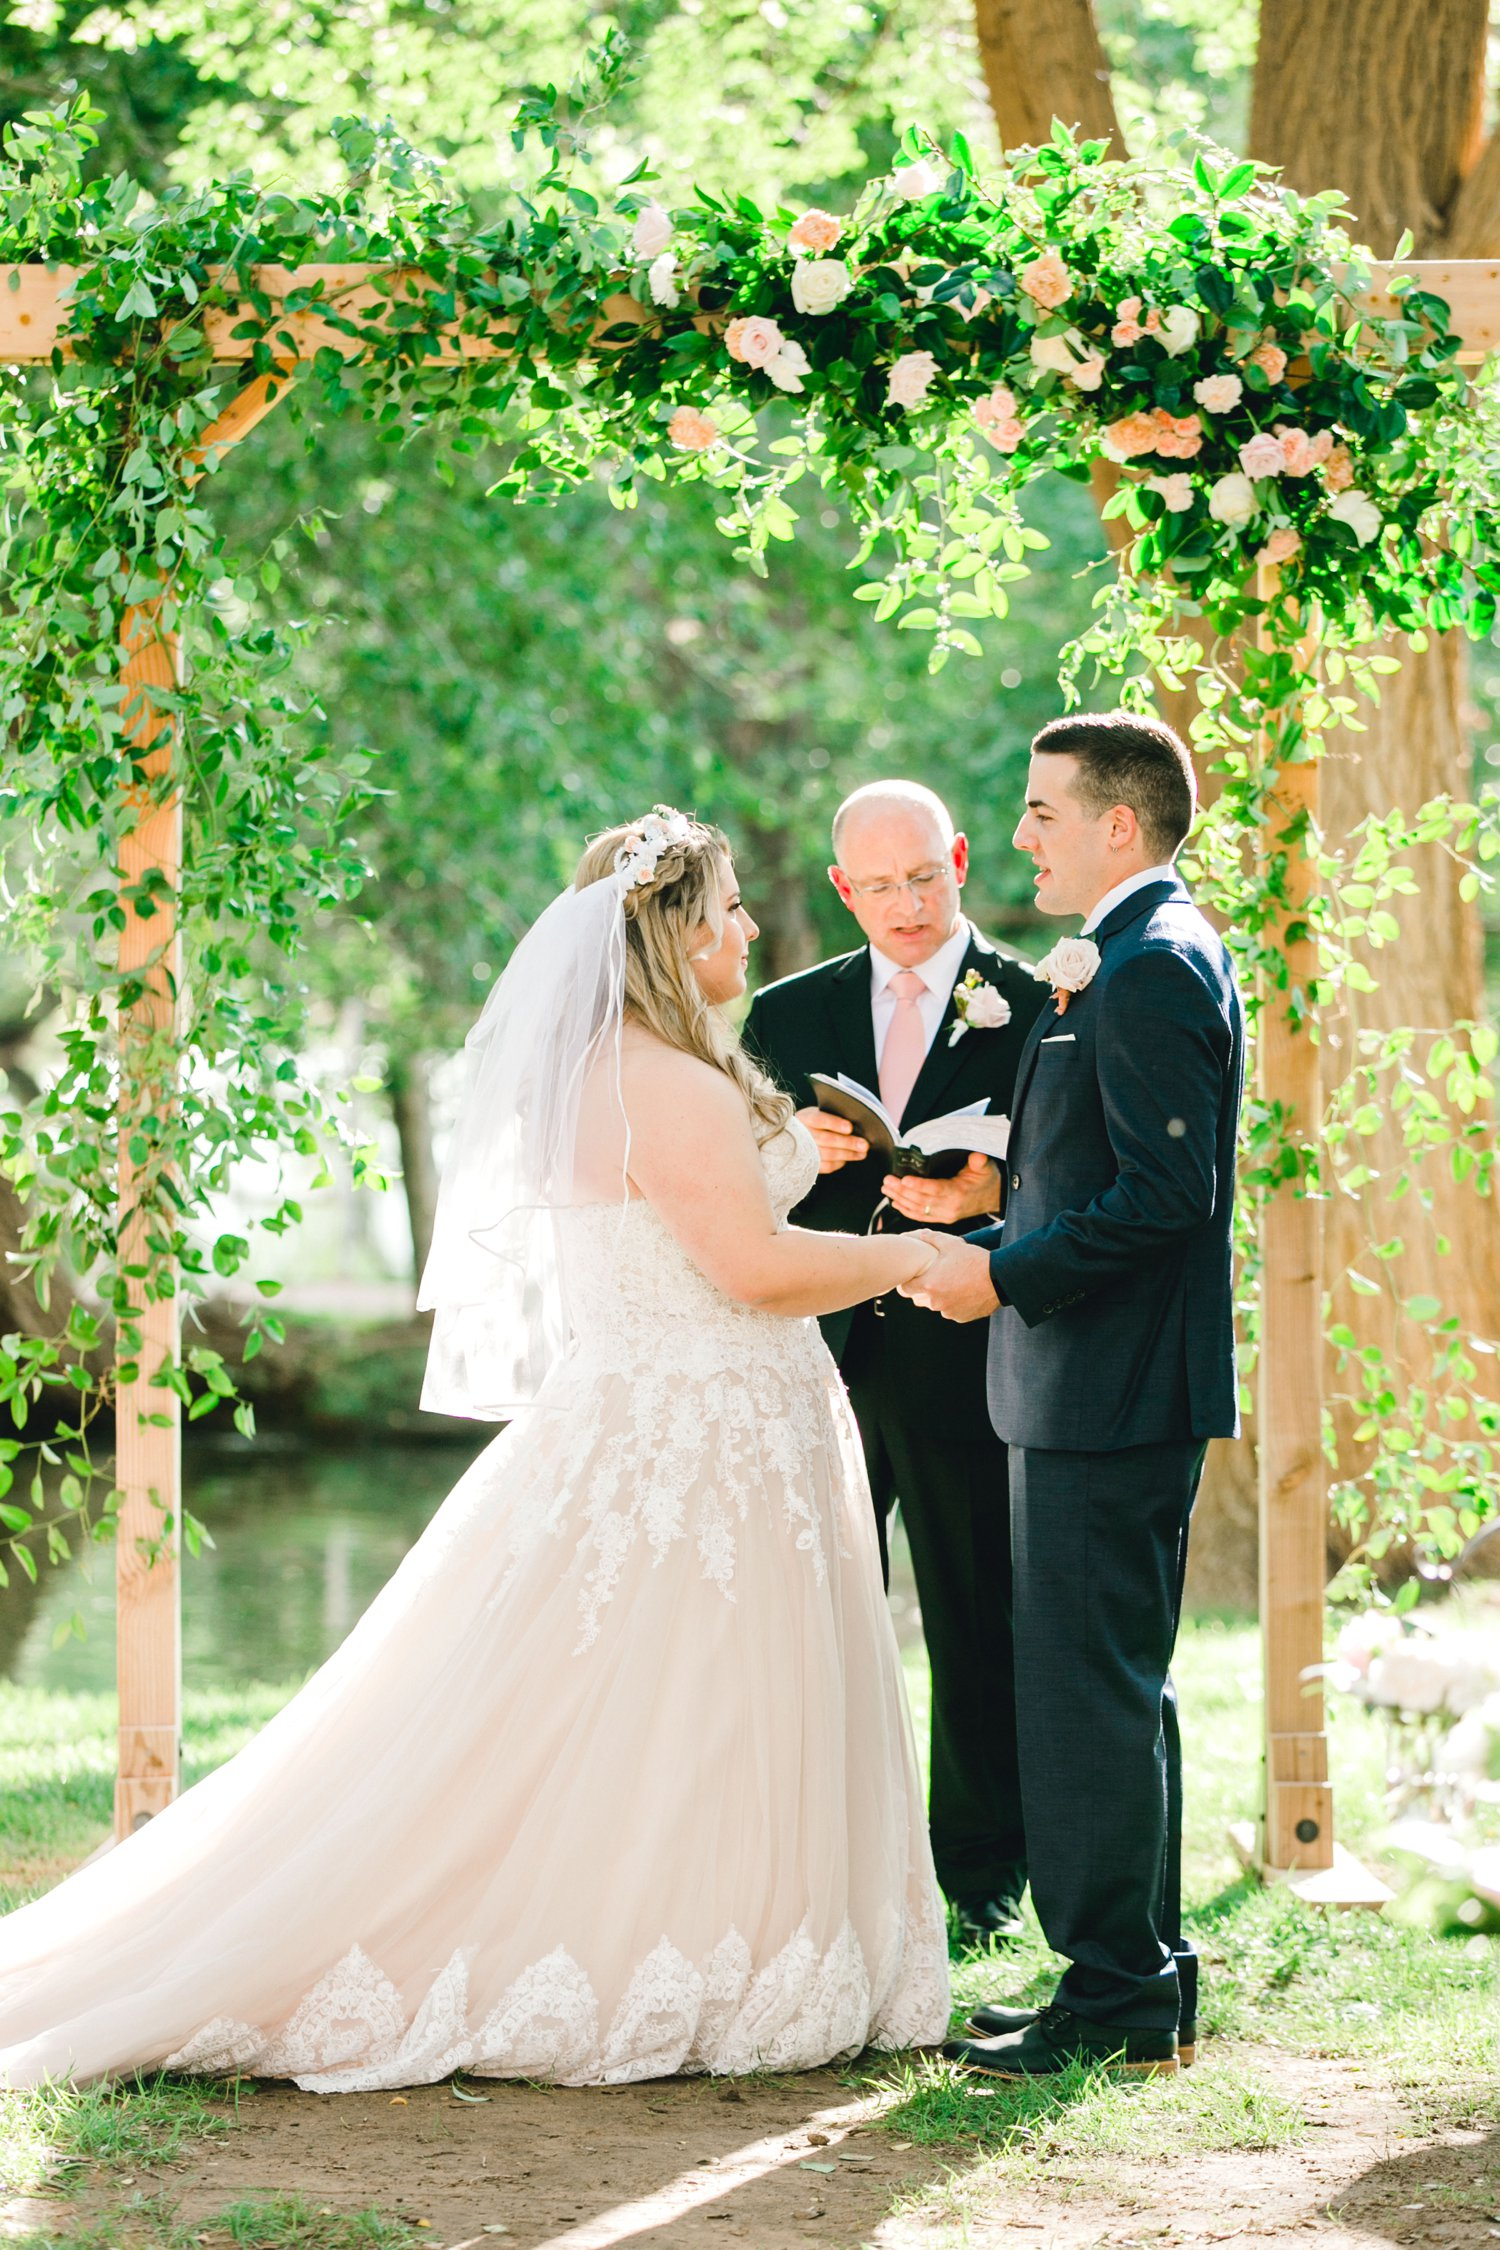 SARAH_AND_GEOFFREY_SHARP_SPIRIT_RANCH_WEDDING_ALLEEJ_LUBBOCK_TX_0065.jpg